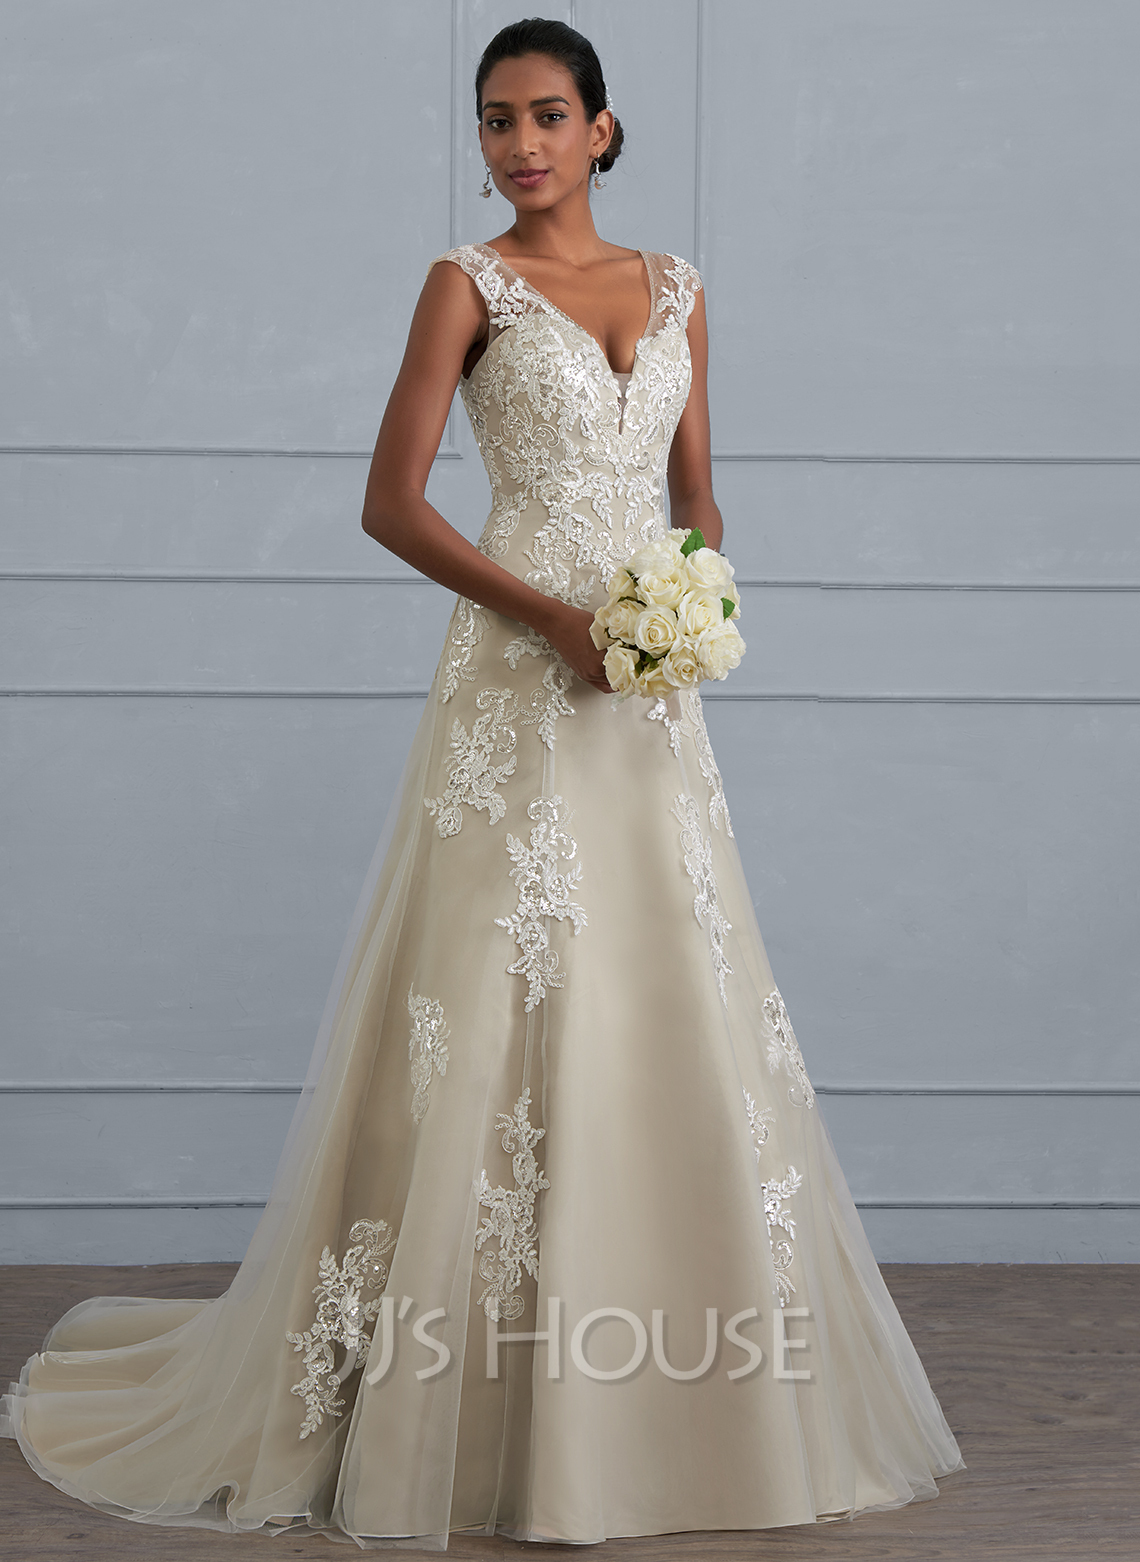 A Line Wedding Dress.A Line Princess V Neck Court Train Tulle Lace Wedding Dress With Beading Sequins 002117023